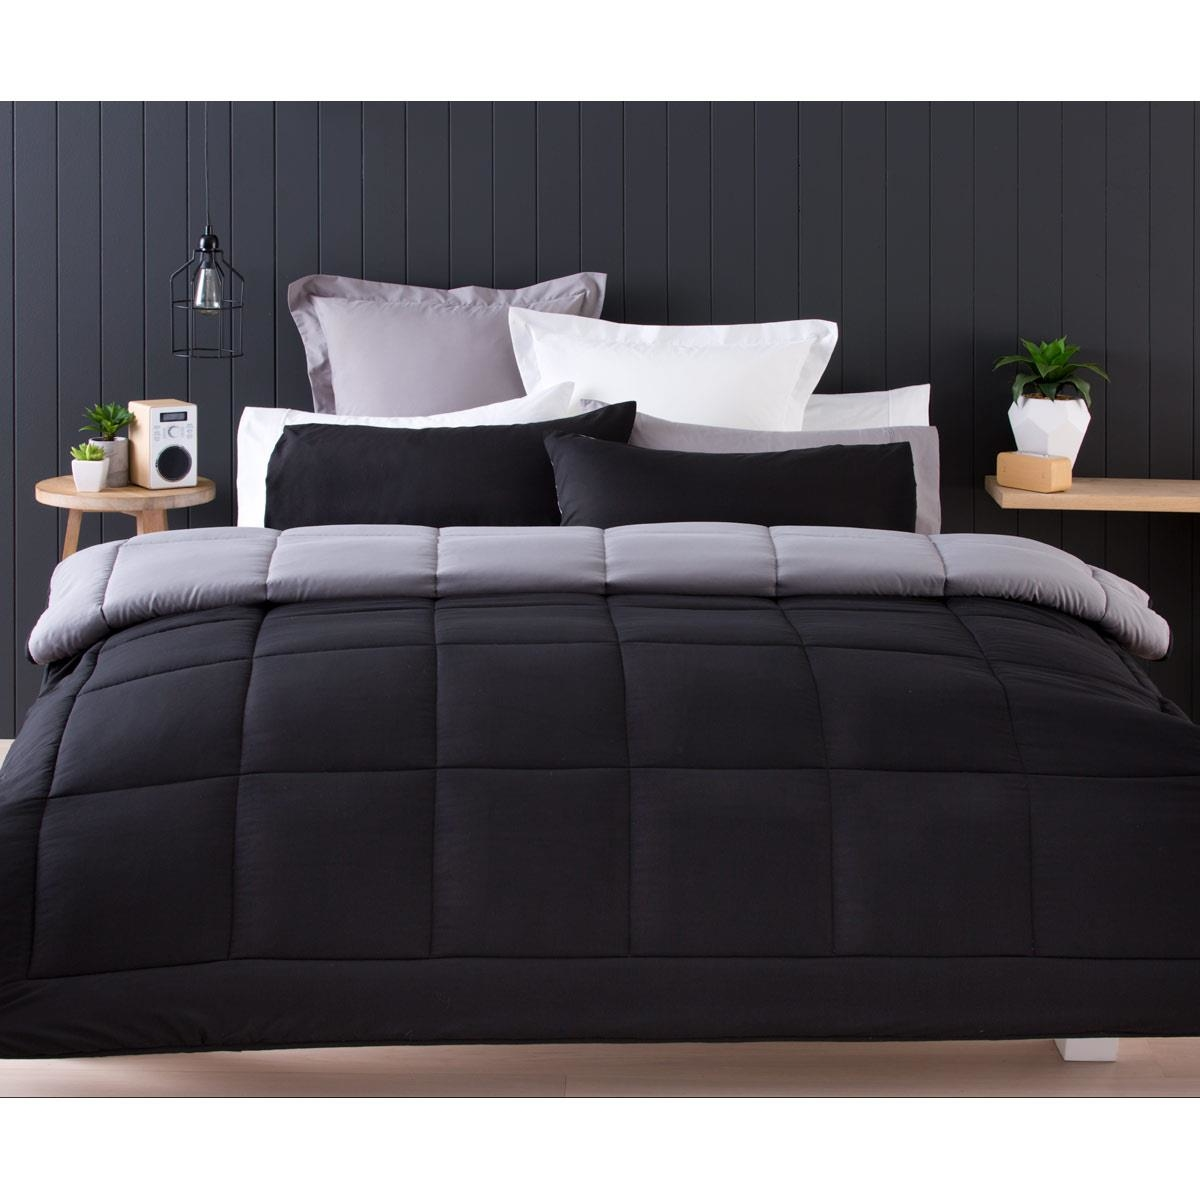 Bedroom Keep Your Cozy With An Amazing Kmart Bed Sets